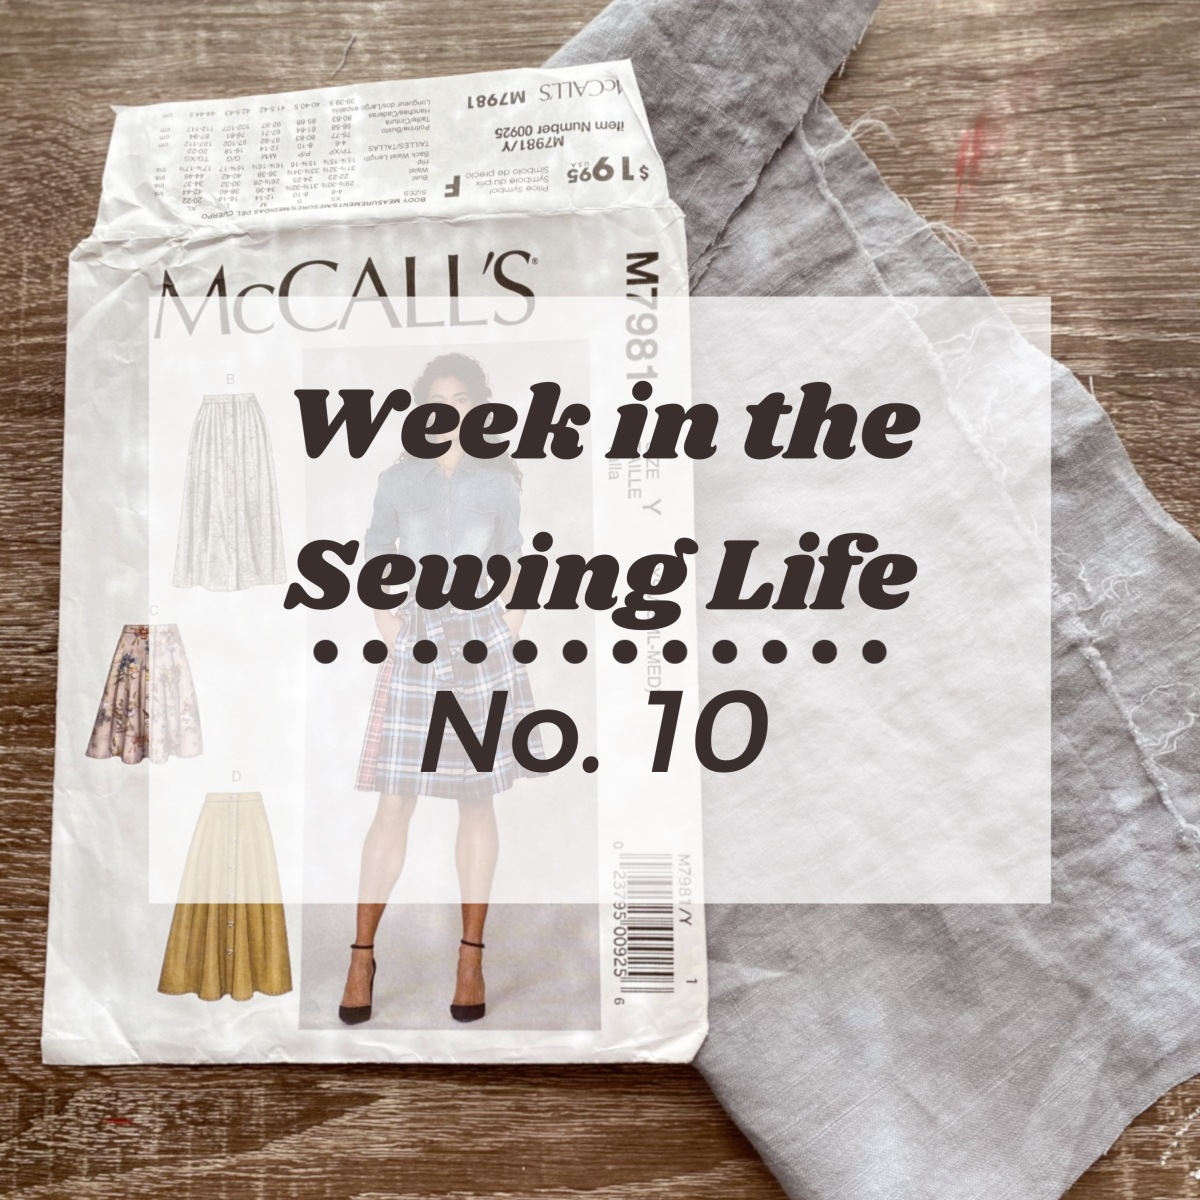 Week in the Sewing Life No. 10